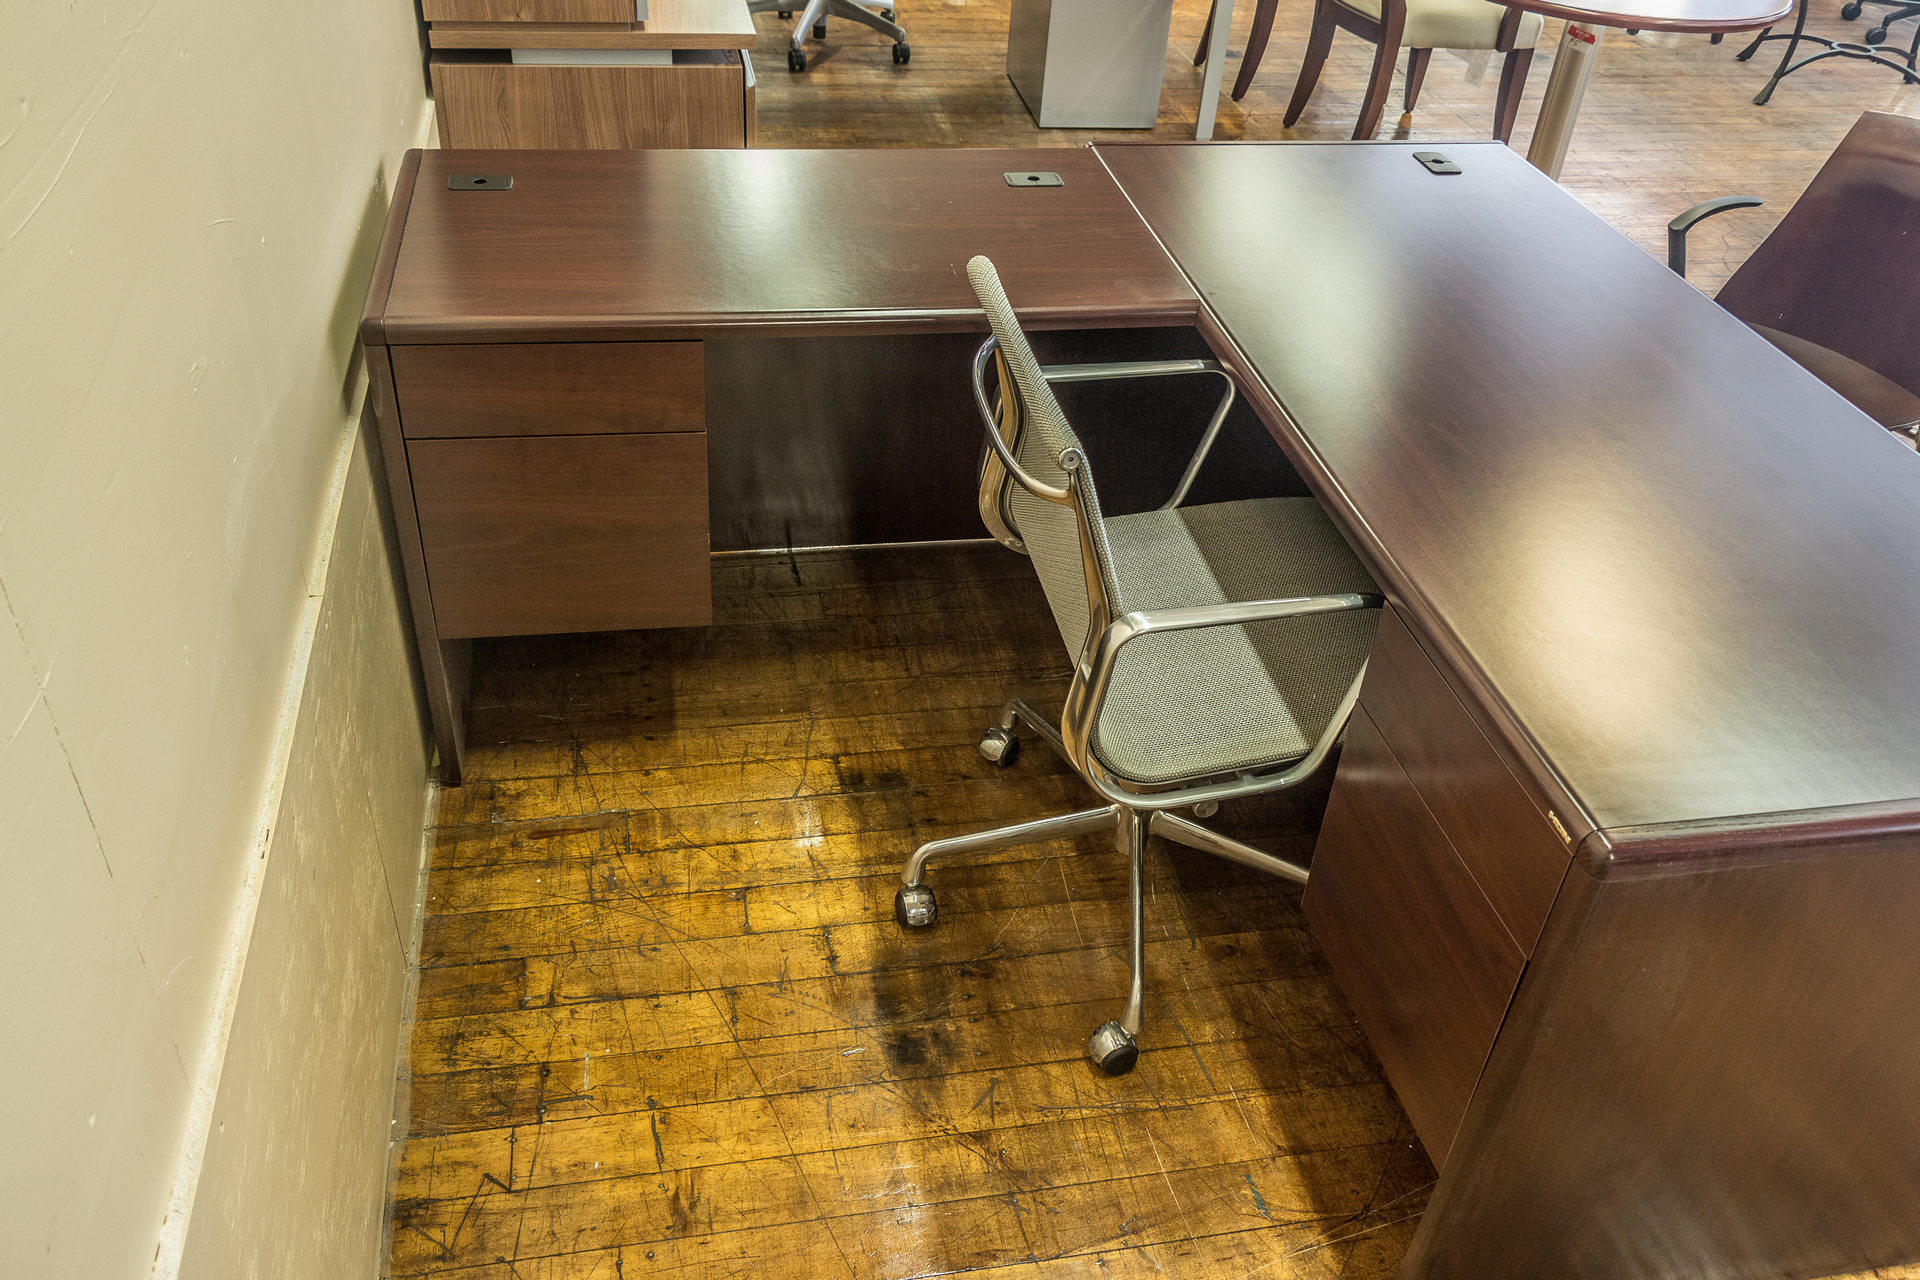 peartreeofficefurniture_peartreeofficefurniture_peartreeofficefurniture_hon-cherry-laminate-l-desks.jpg